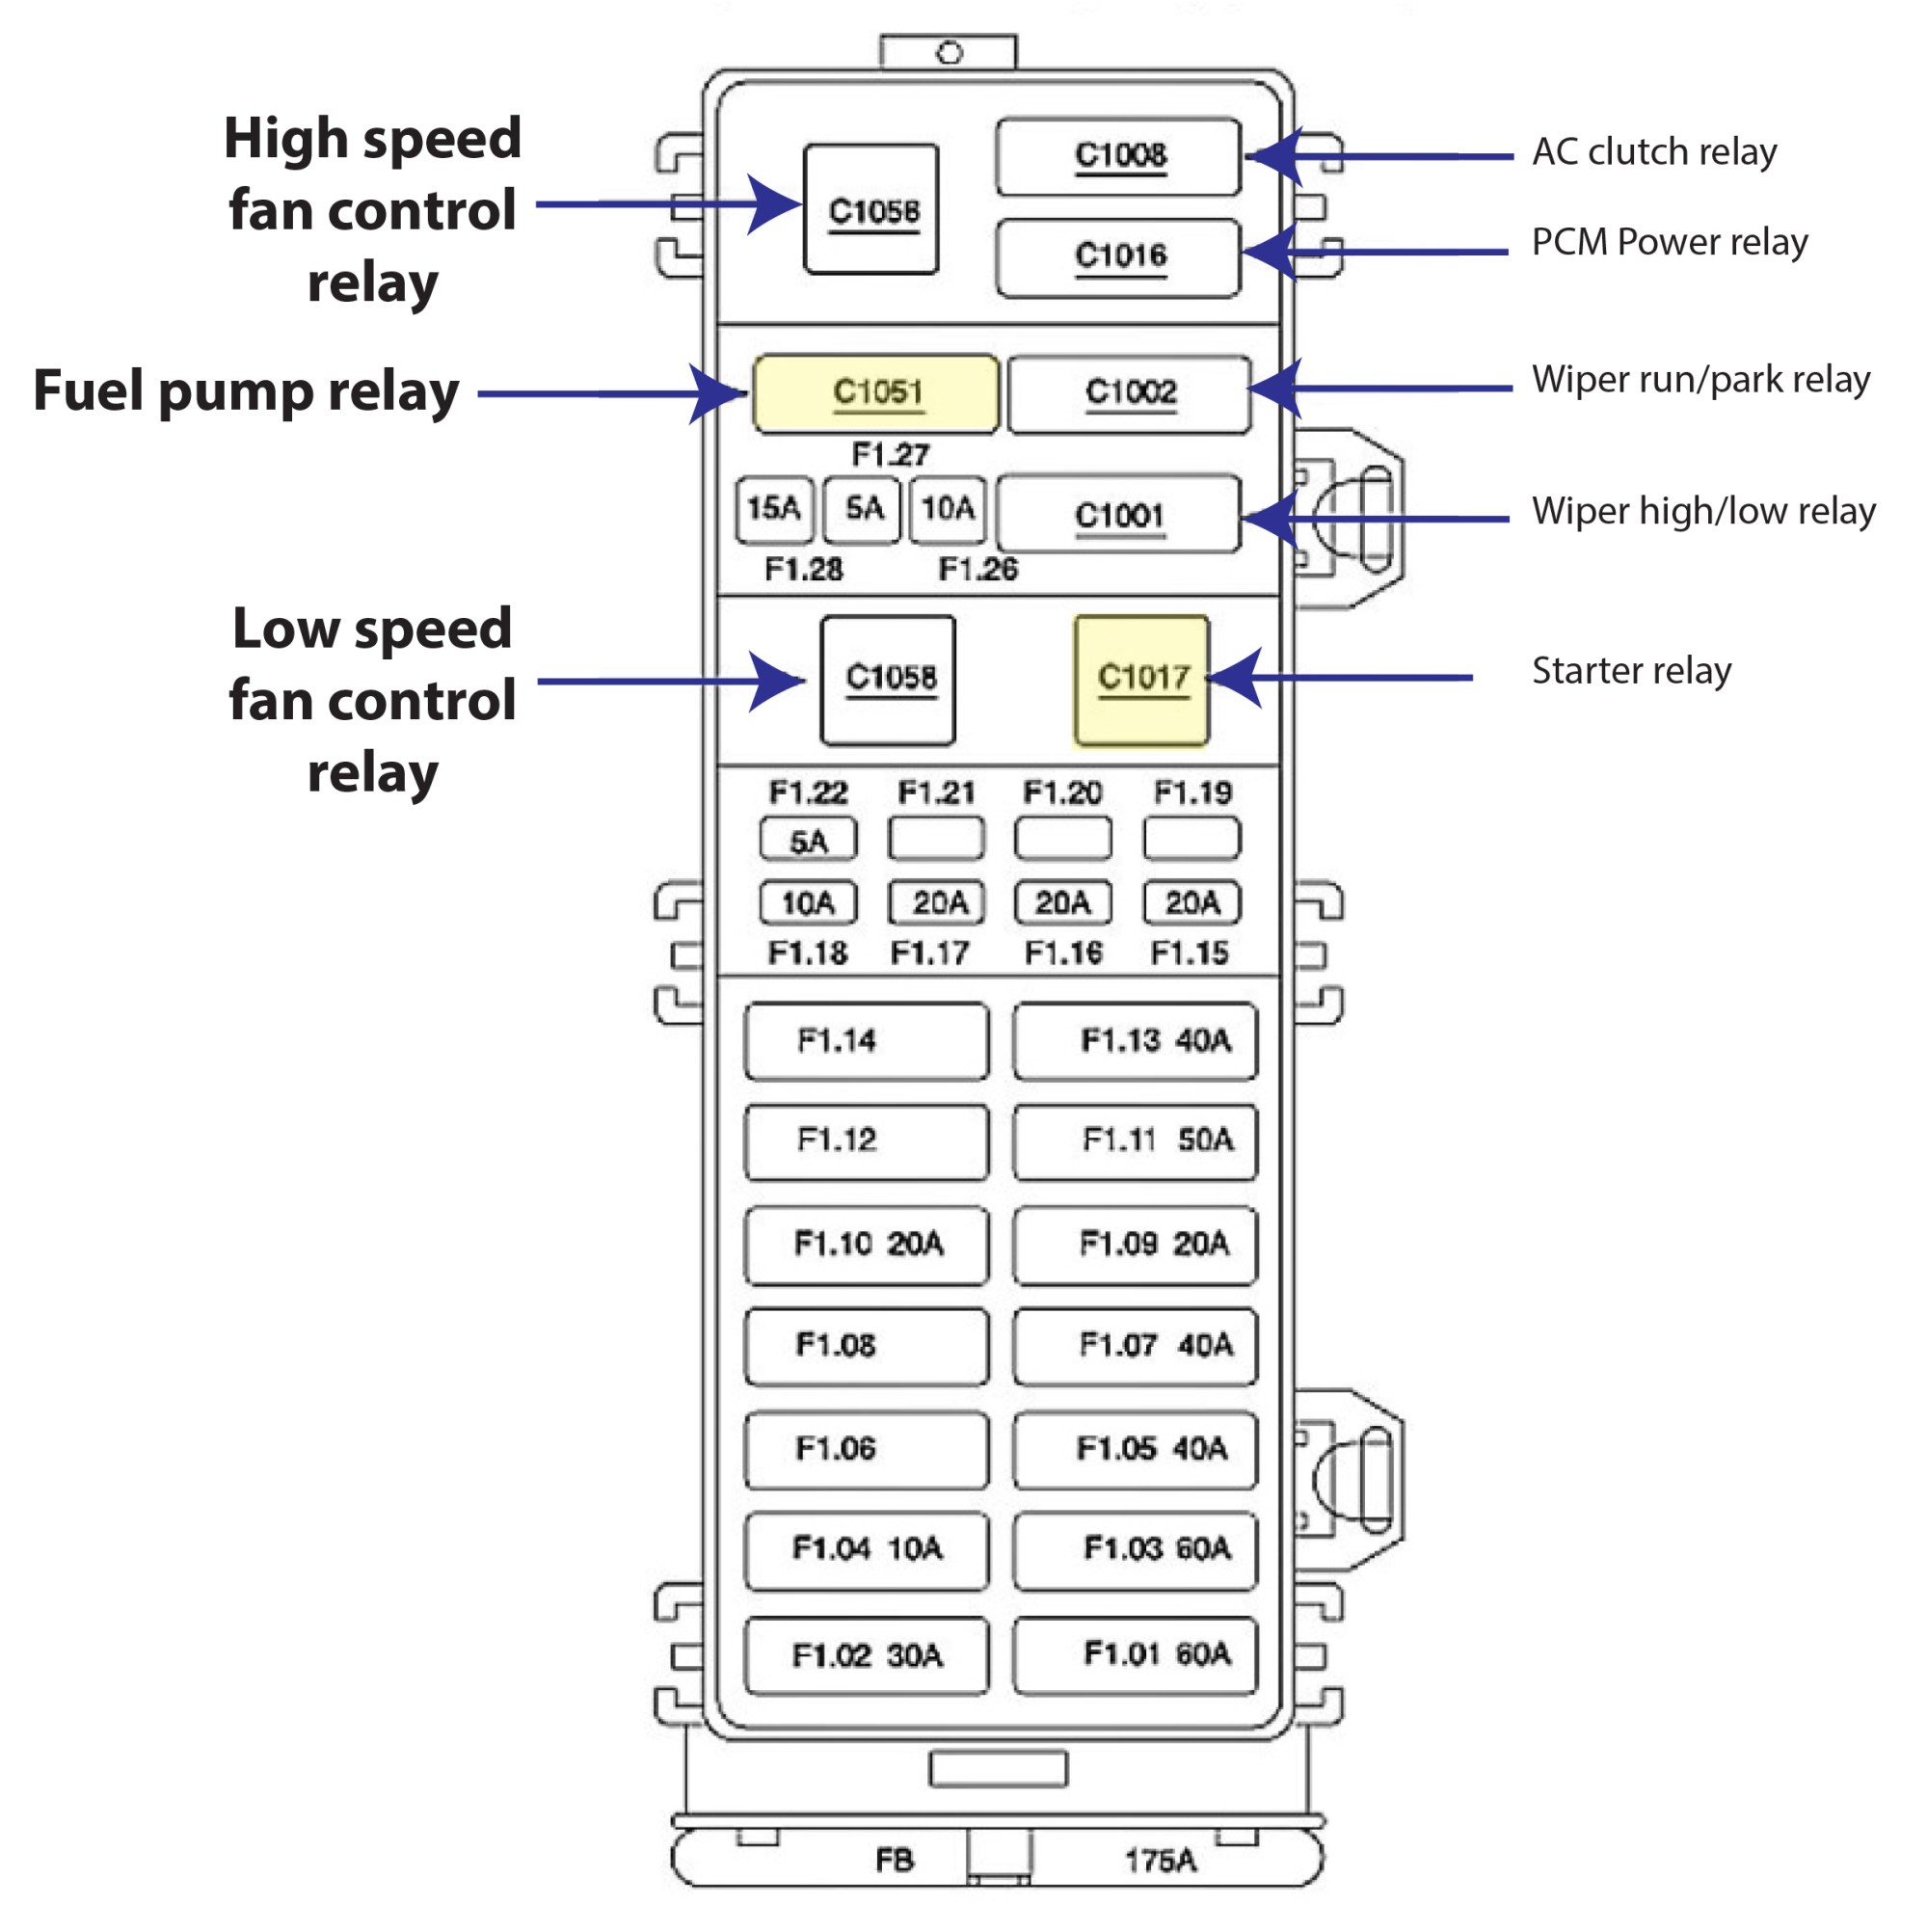 hight resolution of 04 ford taurus fuse box diagram wiring diagram04 ford taurus fuse box diagram